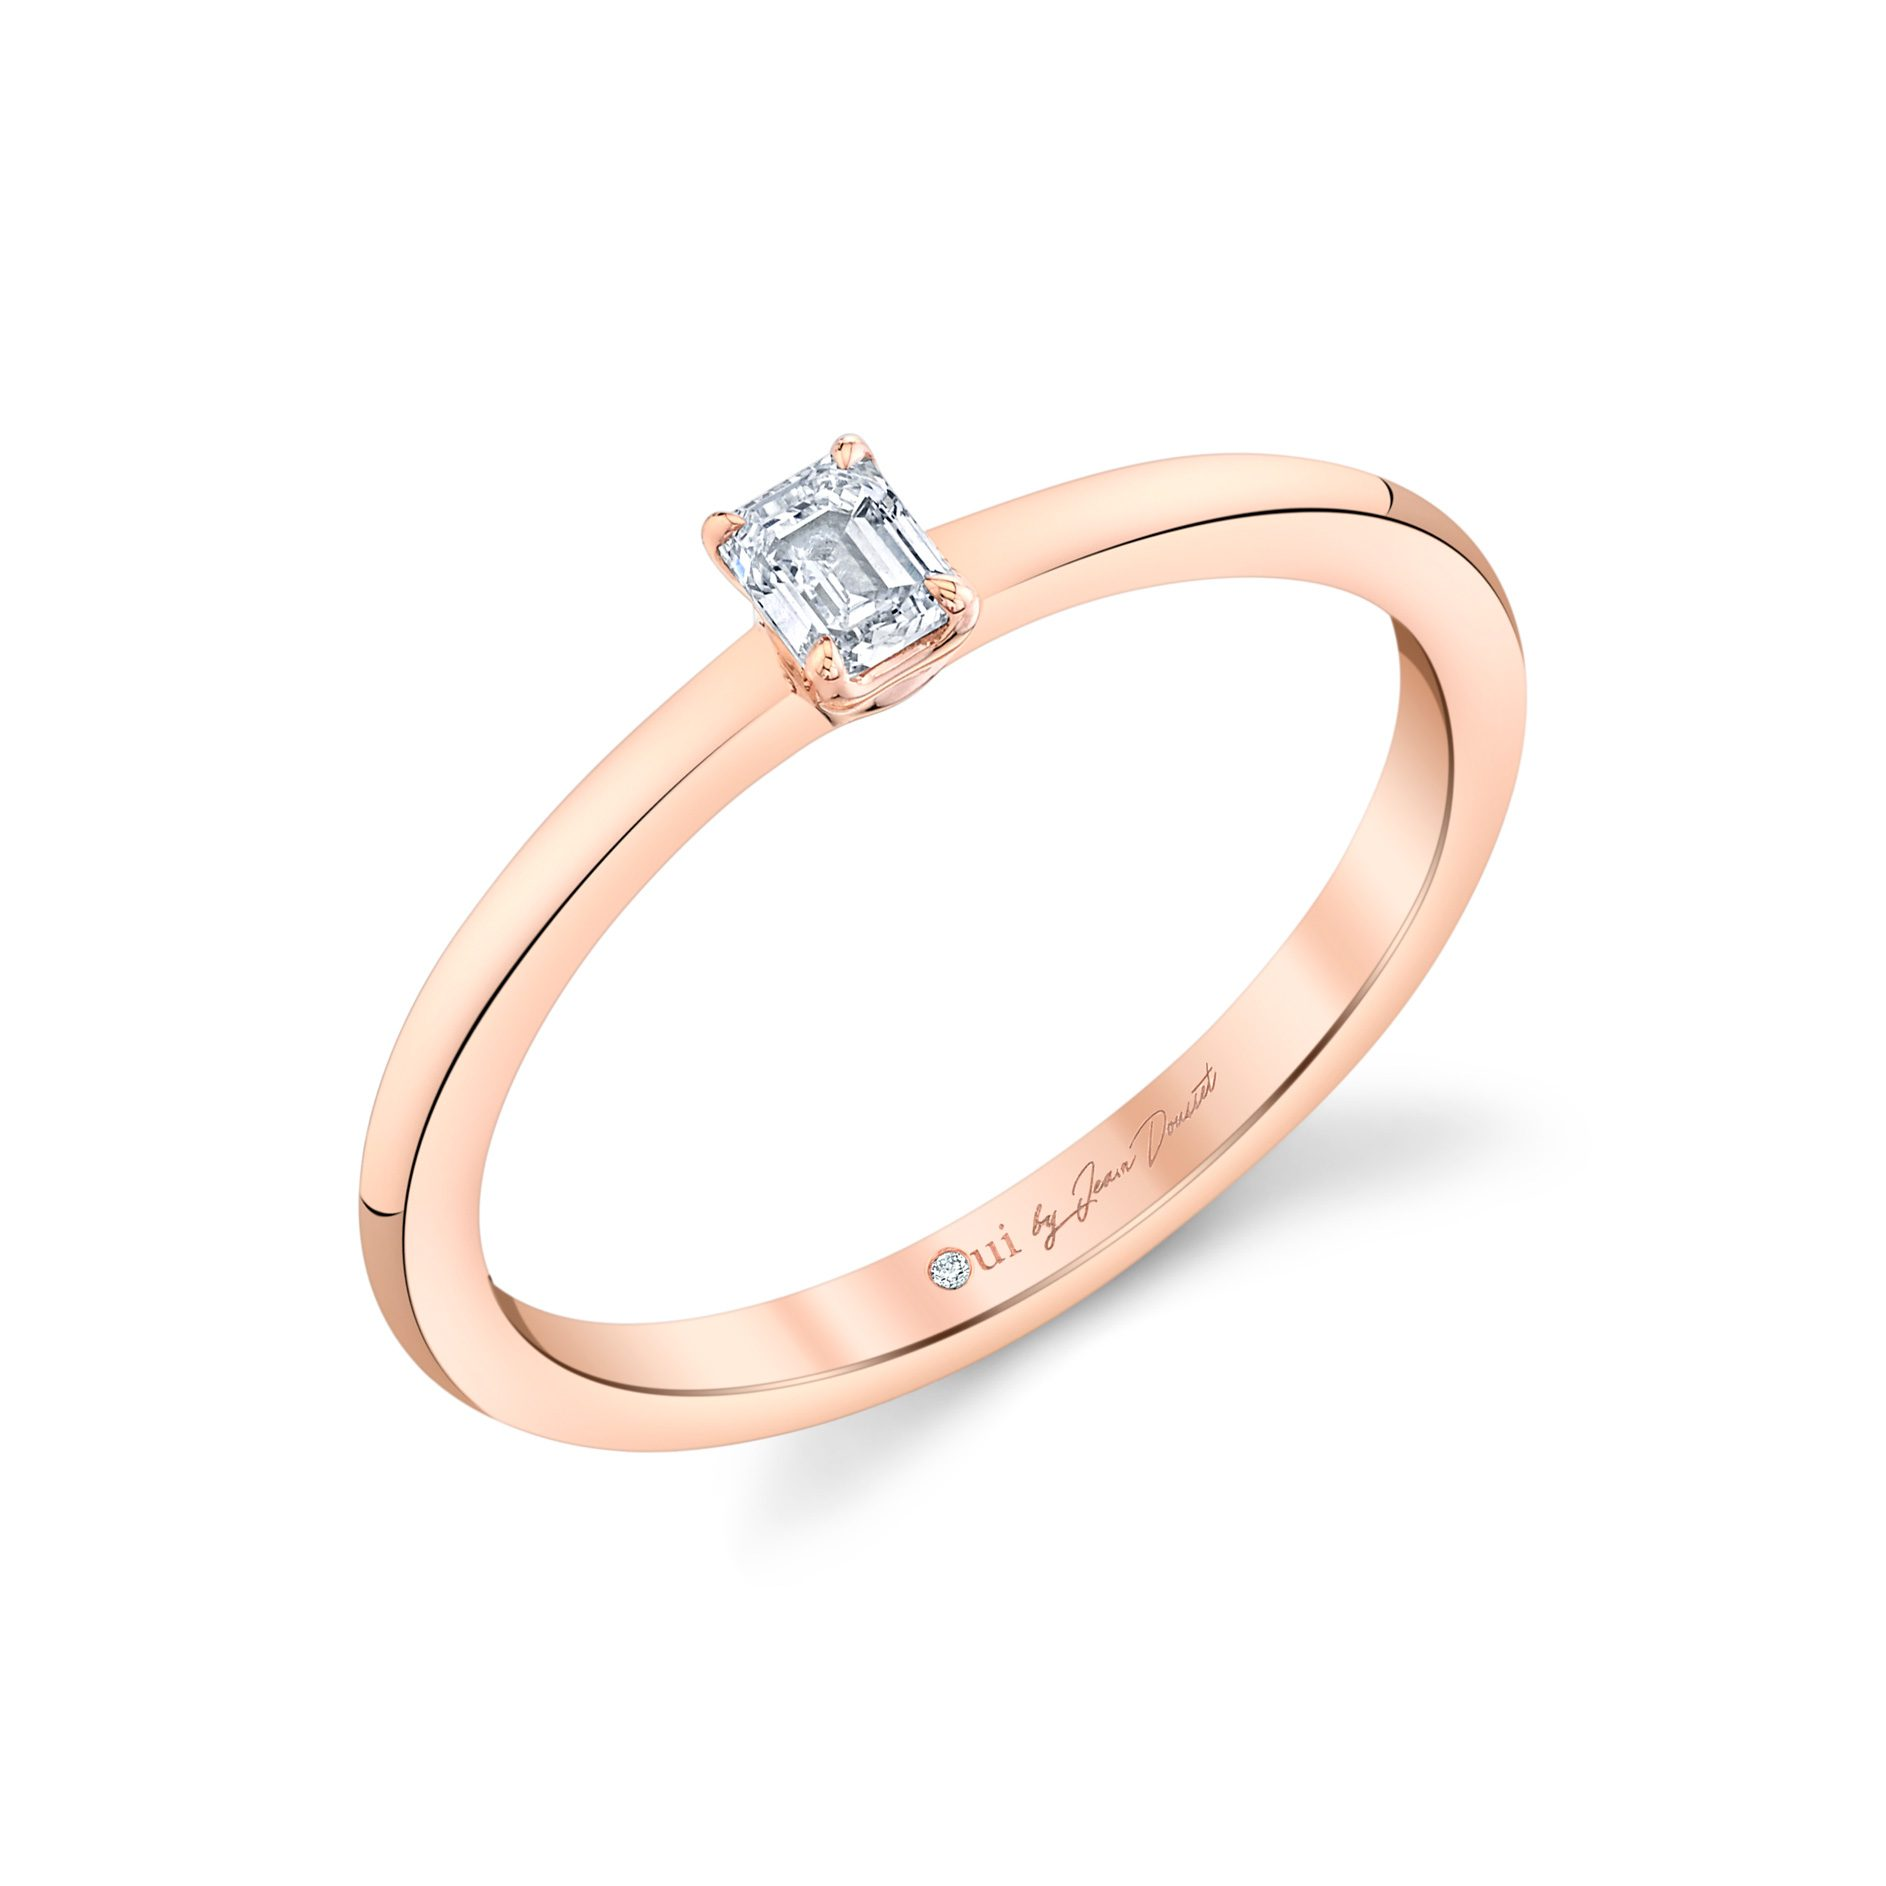 La Petite Emerald Diamond Wedding Band in 18k Rose Gold Standing View by Oui by Jean Dousset